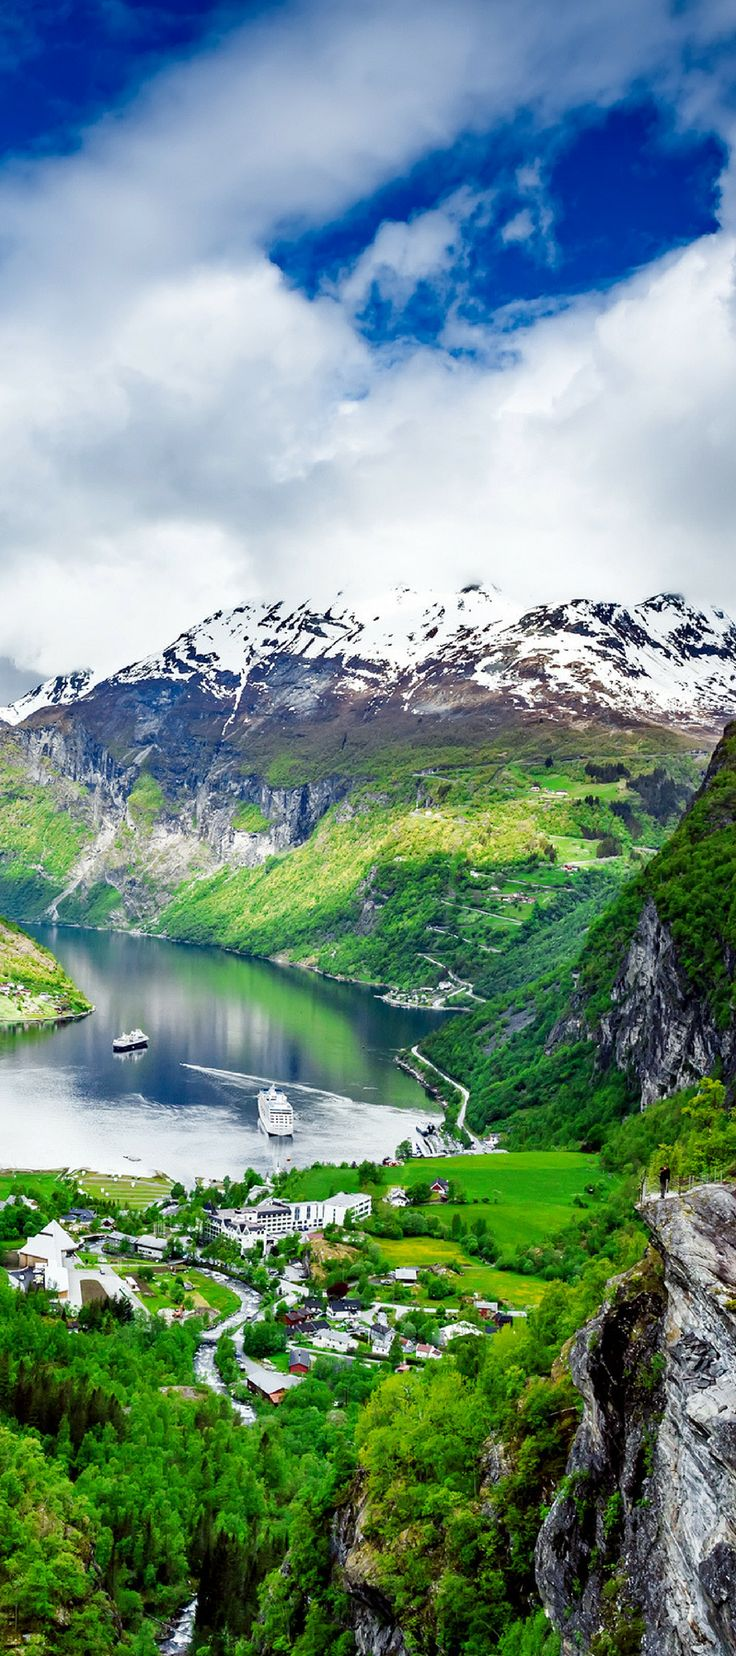 The famous Geiranger Fjord in the summer! Enjoy 20 incredible photos of Norway you can add to your bucket list! Fjords | Alesund | Flam | | Bergen | Nature | Waterfalls | Things to do in Norway